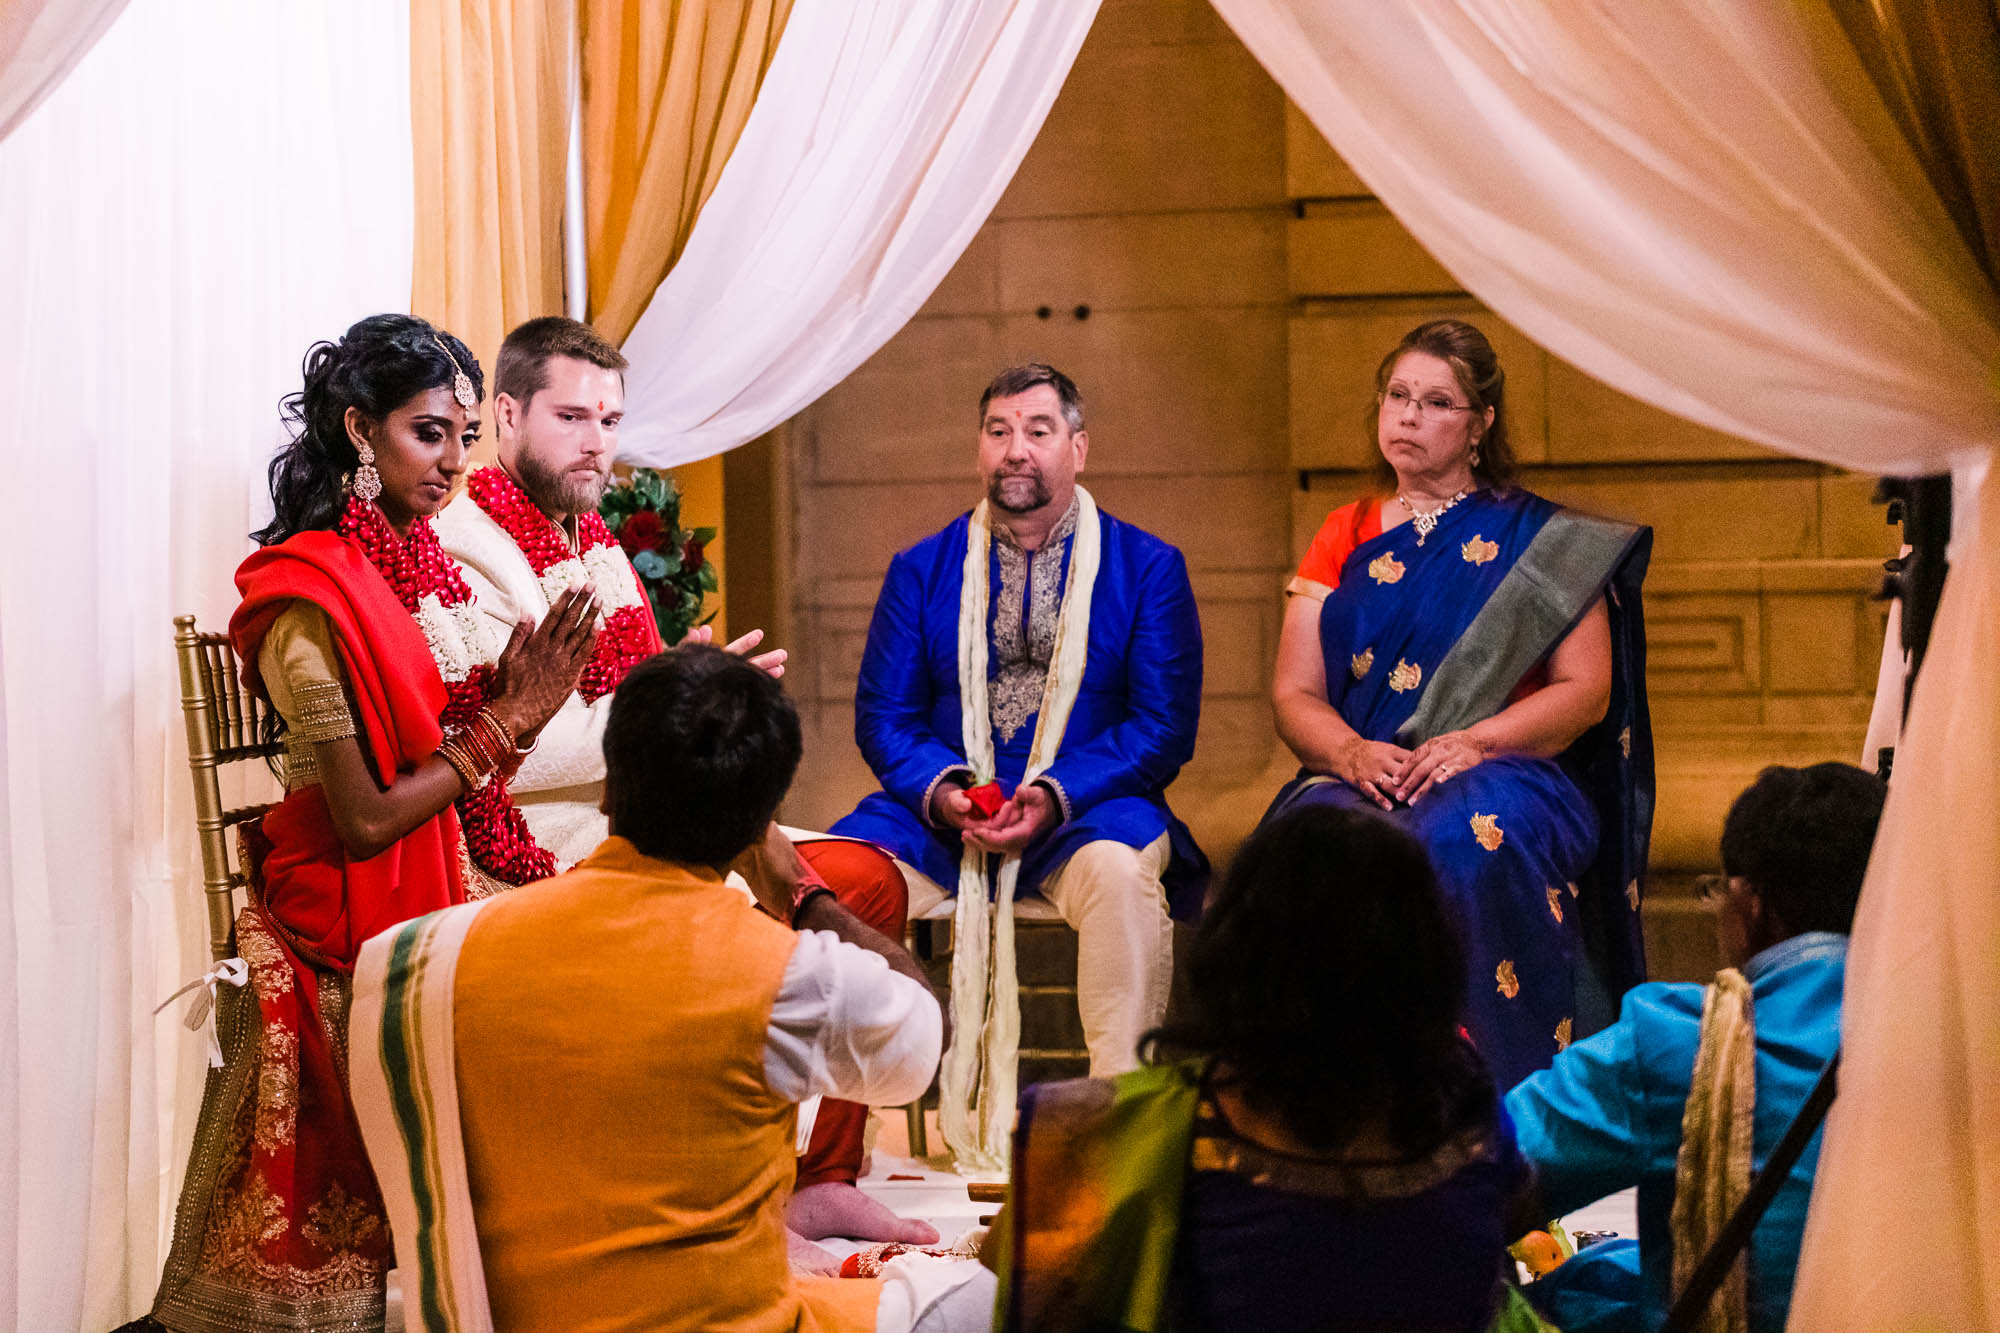 Scranton_Radisson_Hindu_Wedding-9015.jpg